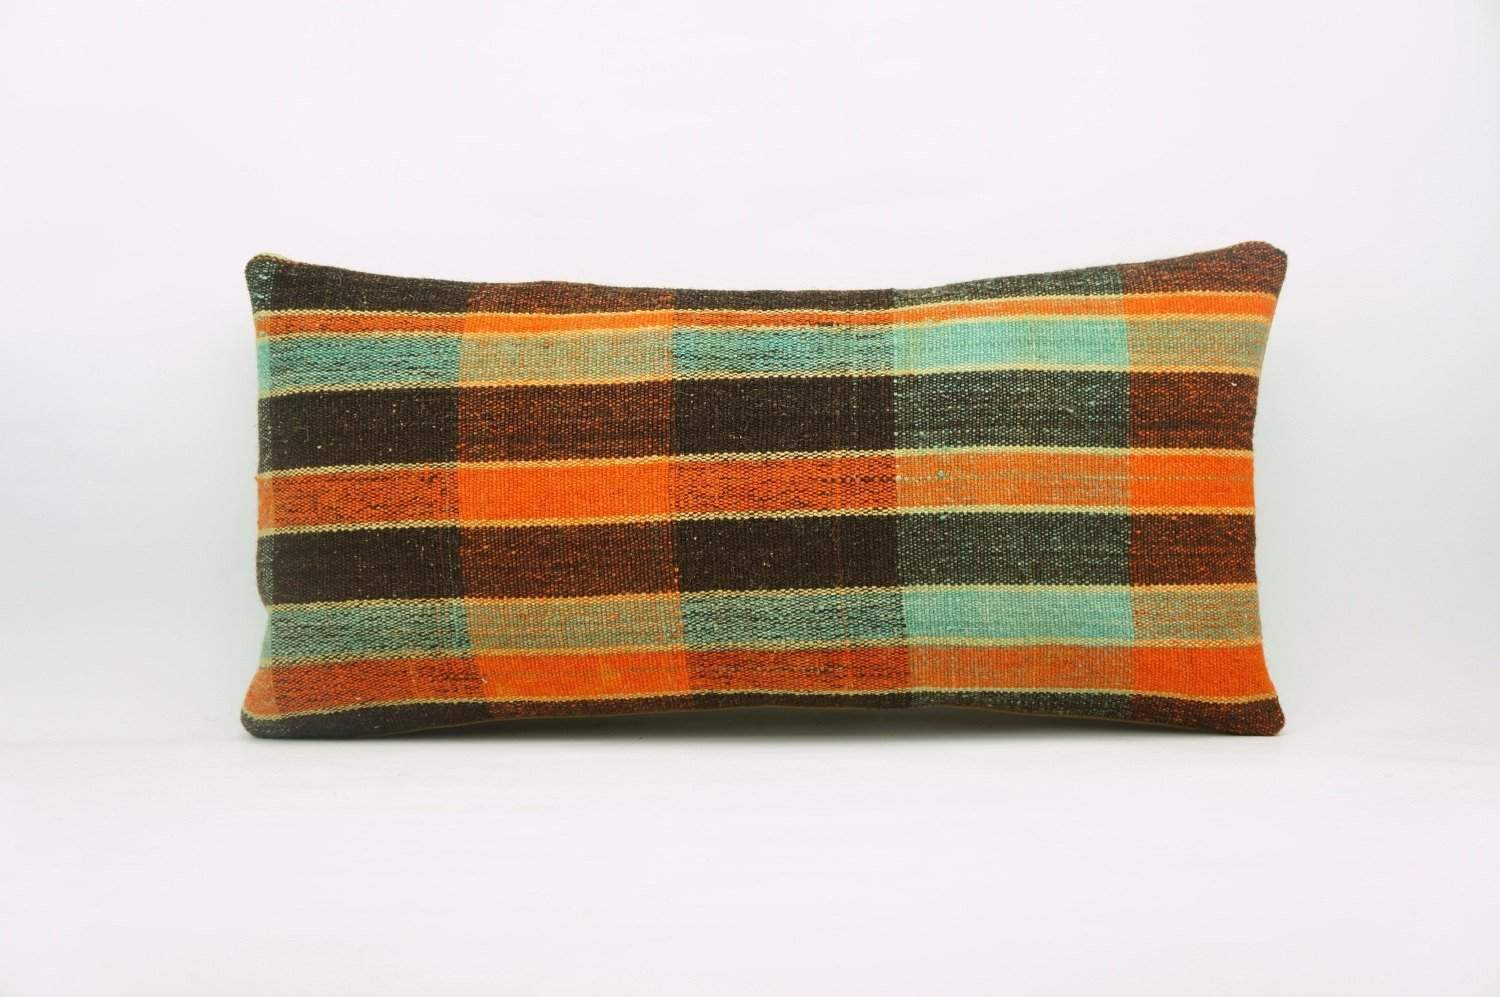 12x24 Vintage Hand Woven Kilim Pillow Lumbar Bohemian pillow case, 973